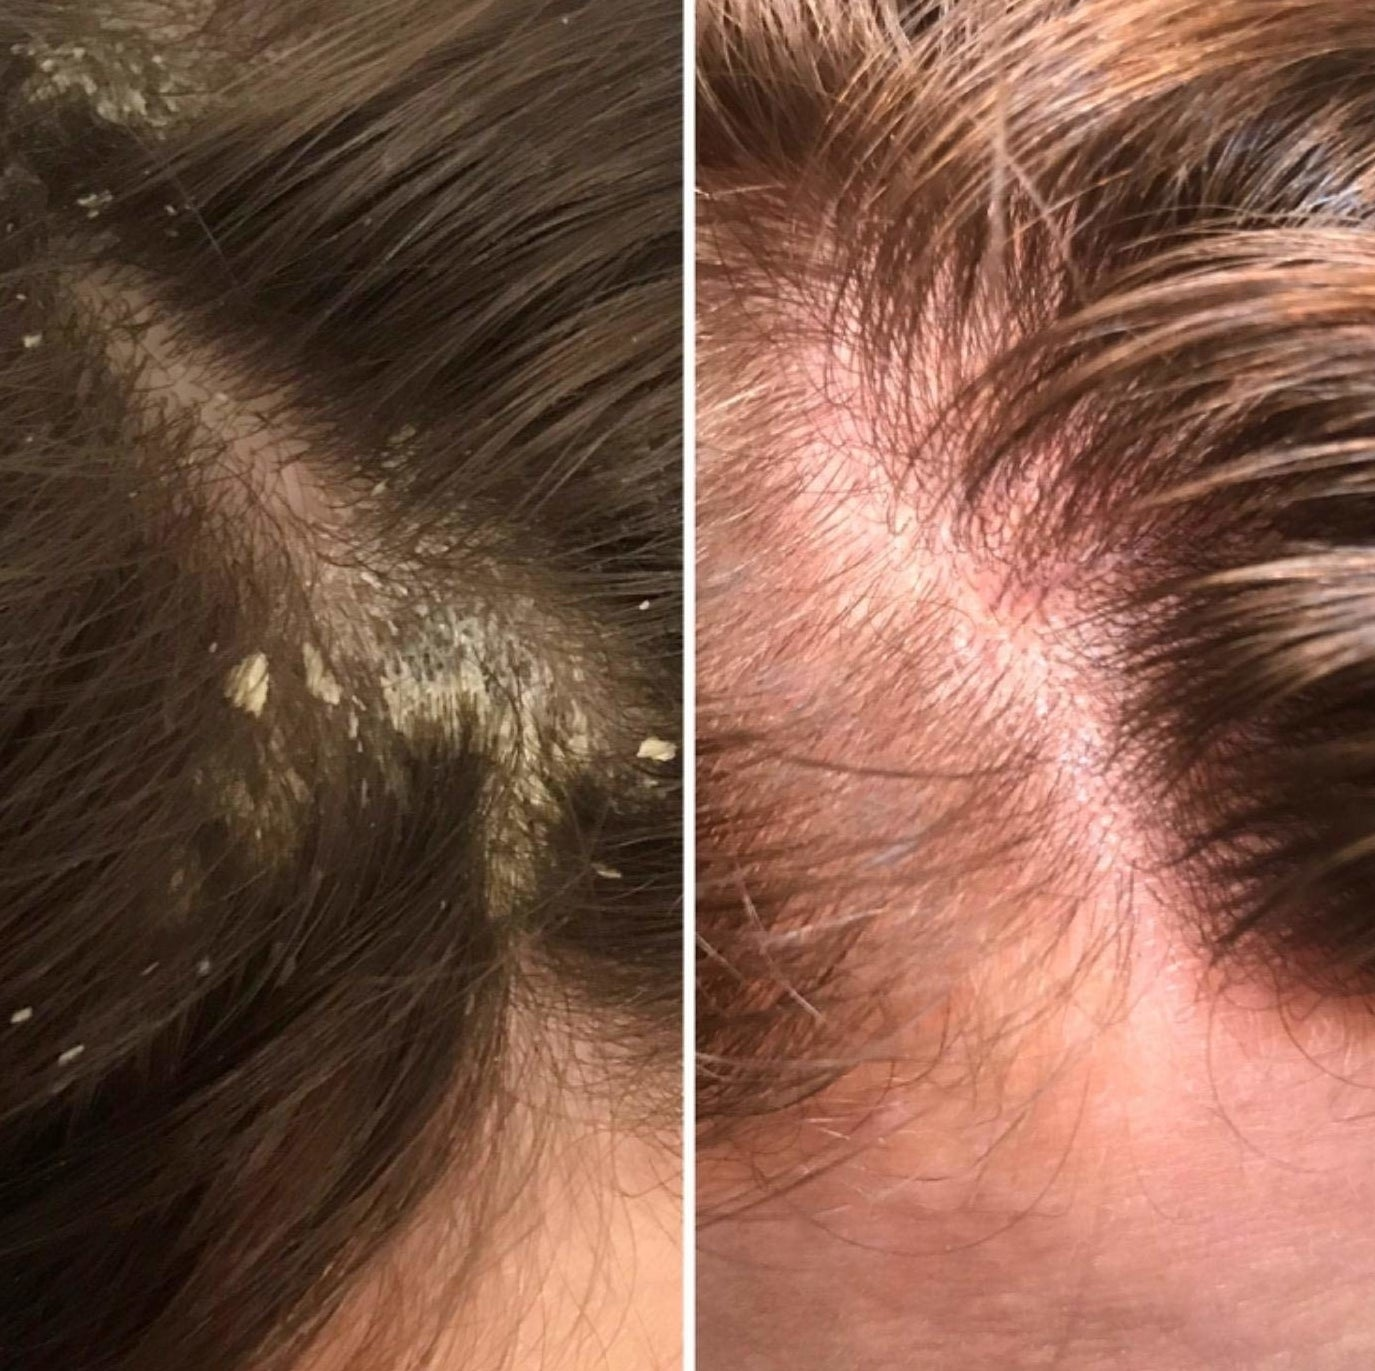 A before-and-after photo showing a head full of dandruff on the left and clear scalp on the right